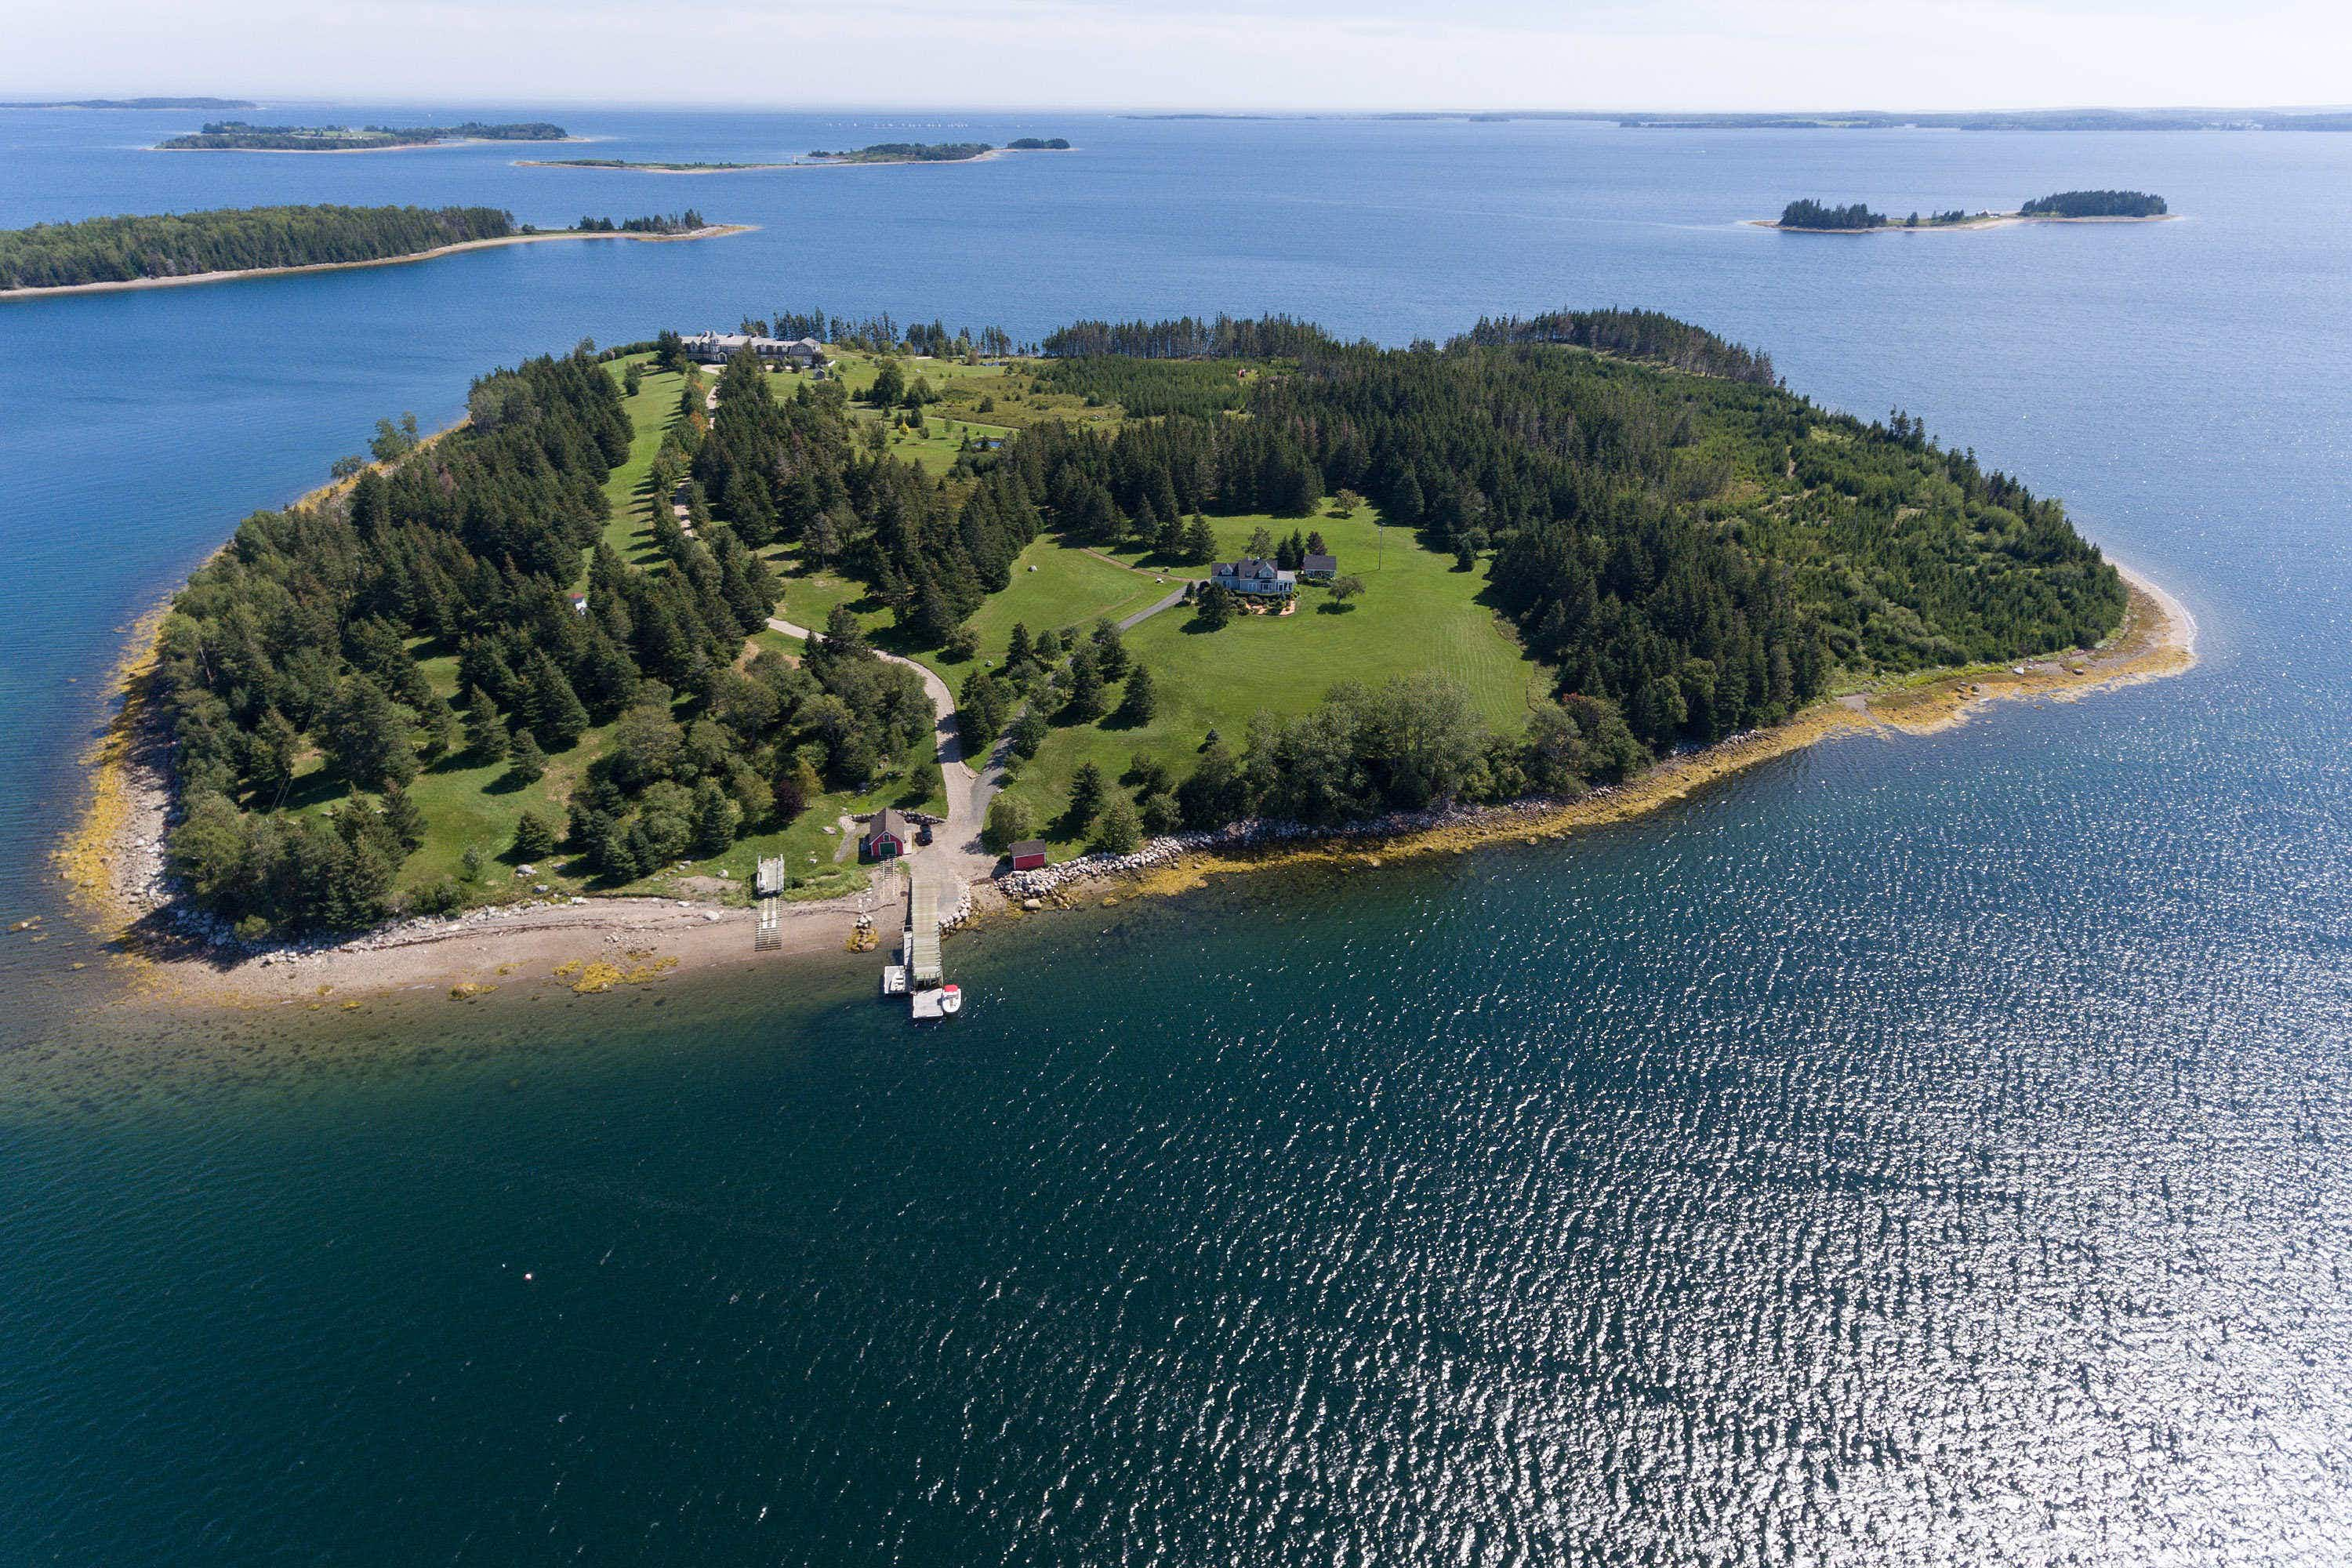 Buy your own private island on Canada's east coast for a cool $7 million